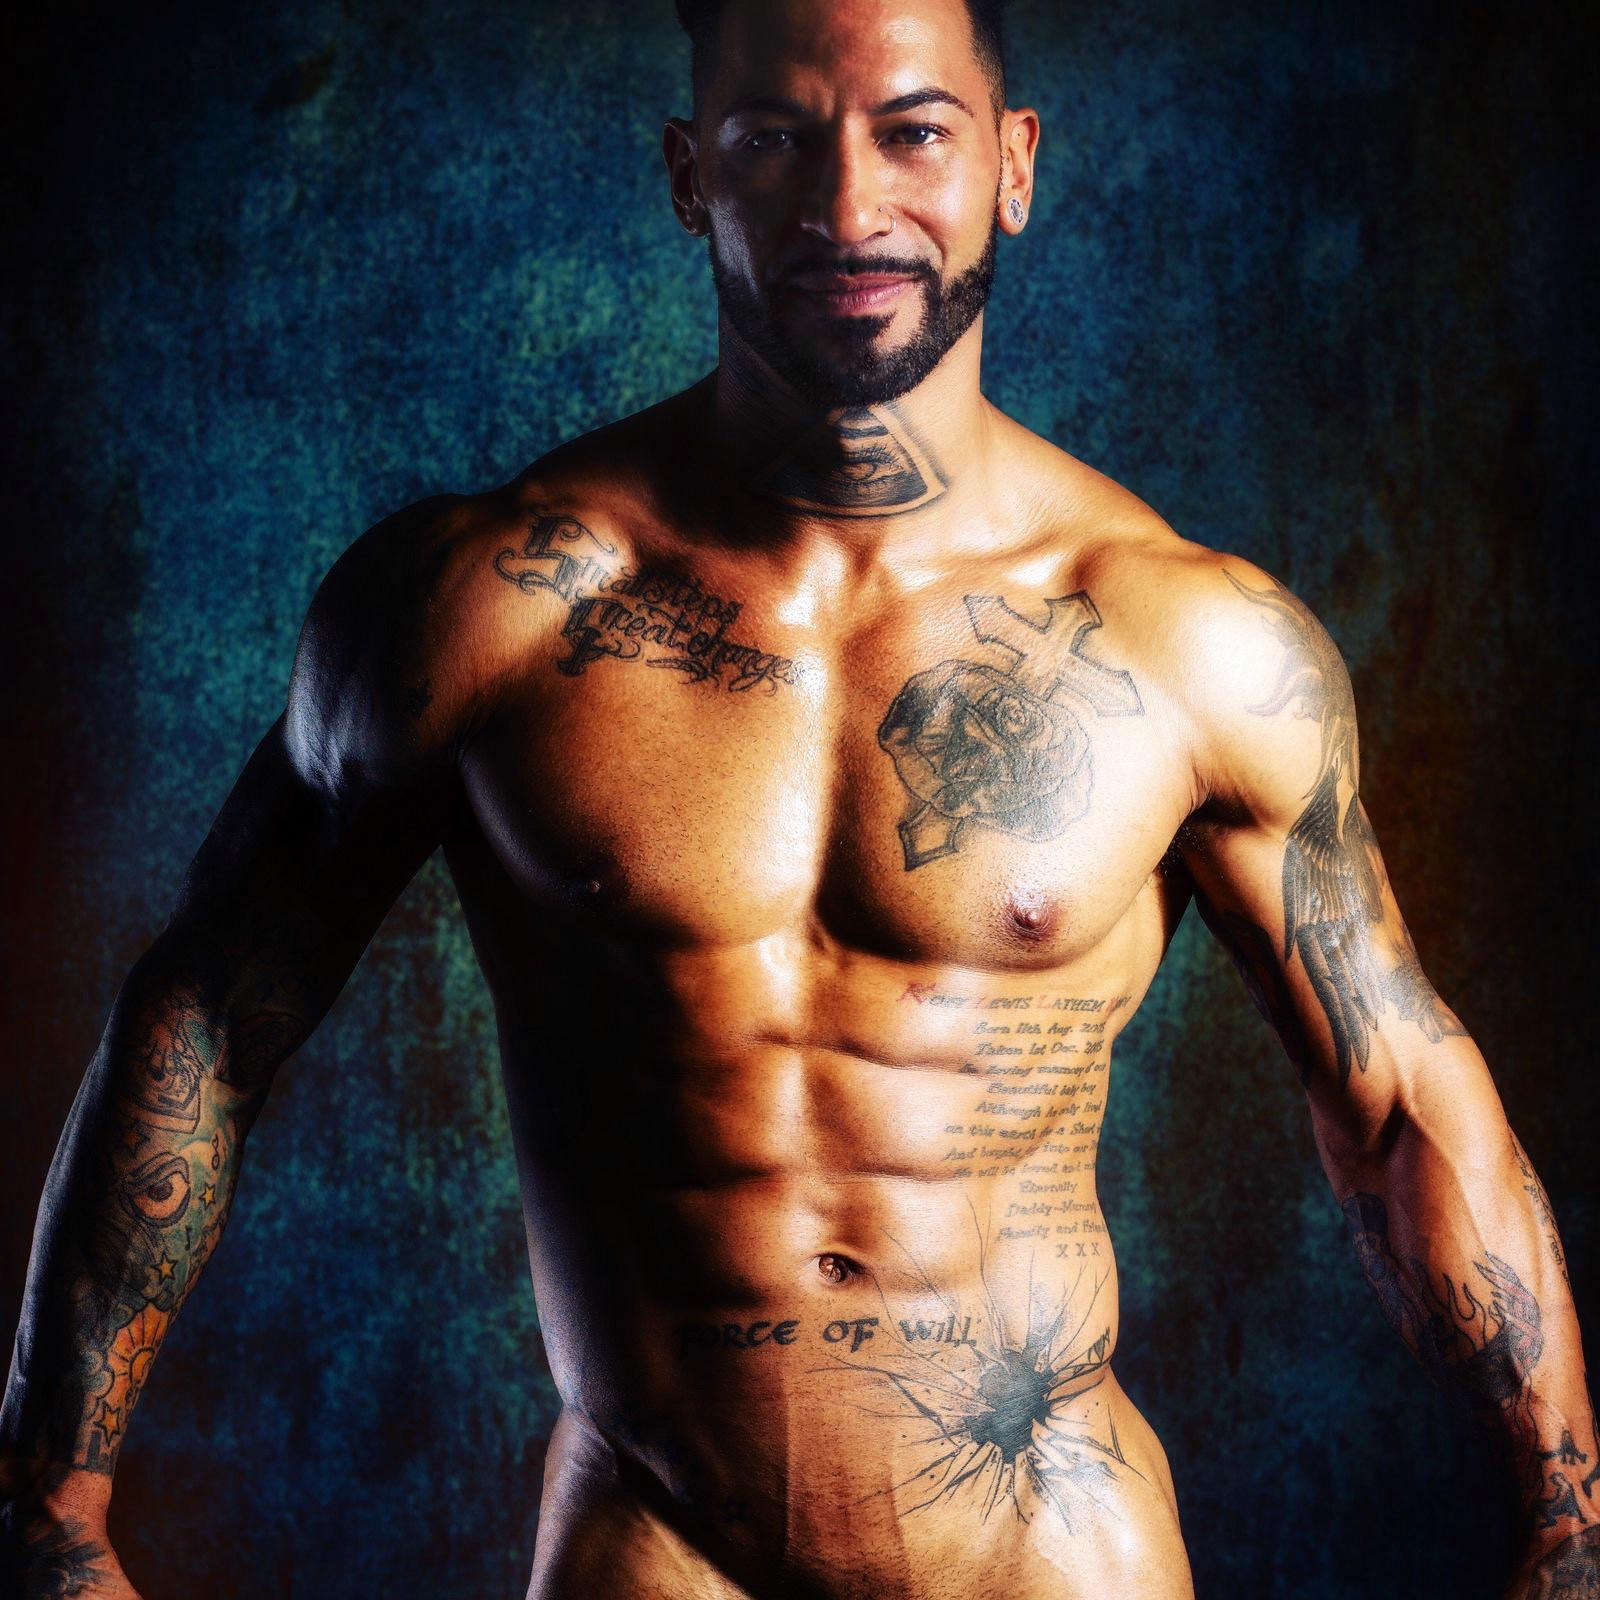 male strippers from the Dreamboys male strip club | Leo